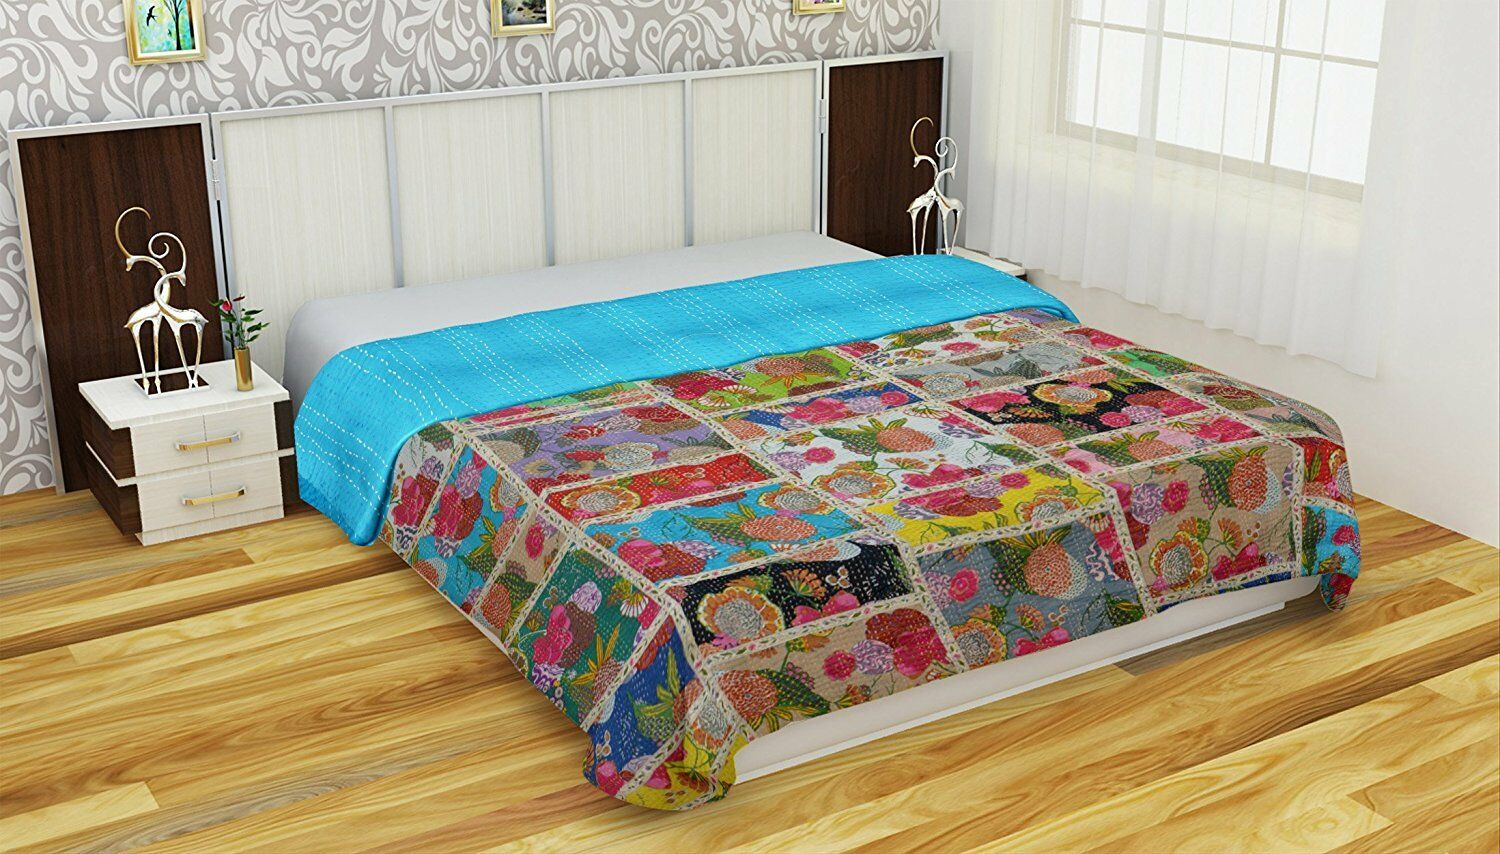 Indian Handmade Floral Patchwork Cotton Kantha Quilt Throw Blanket Vintage Throw